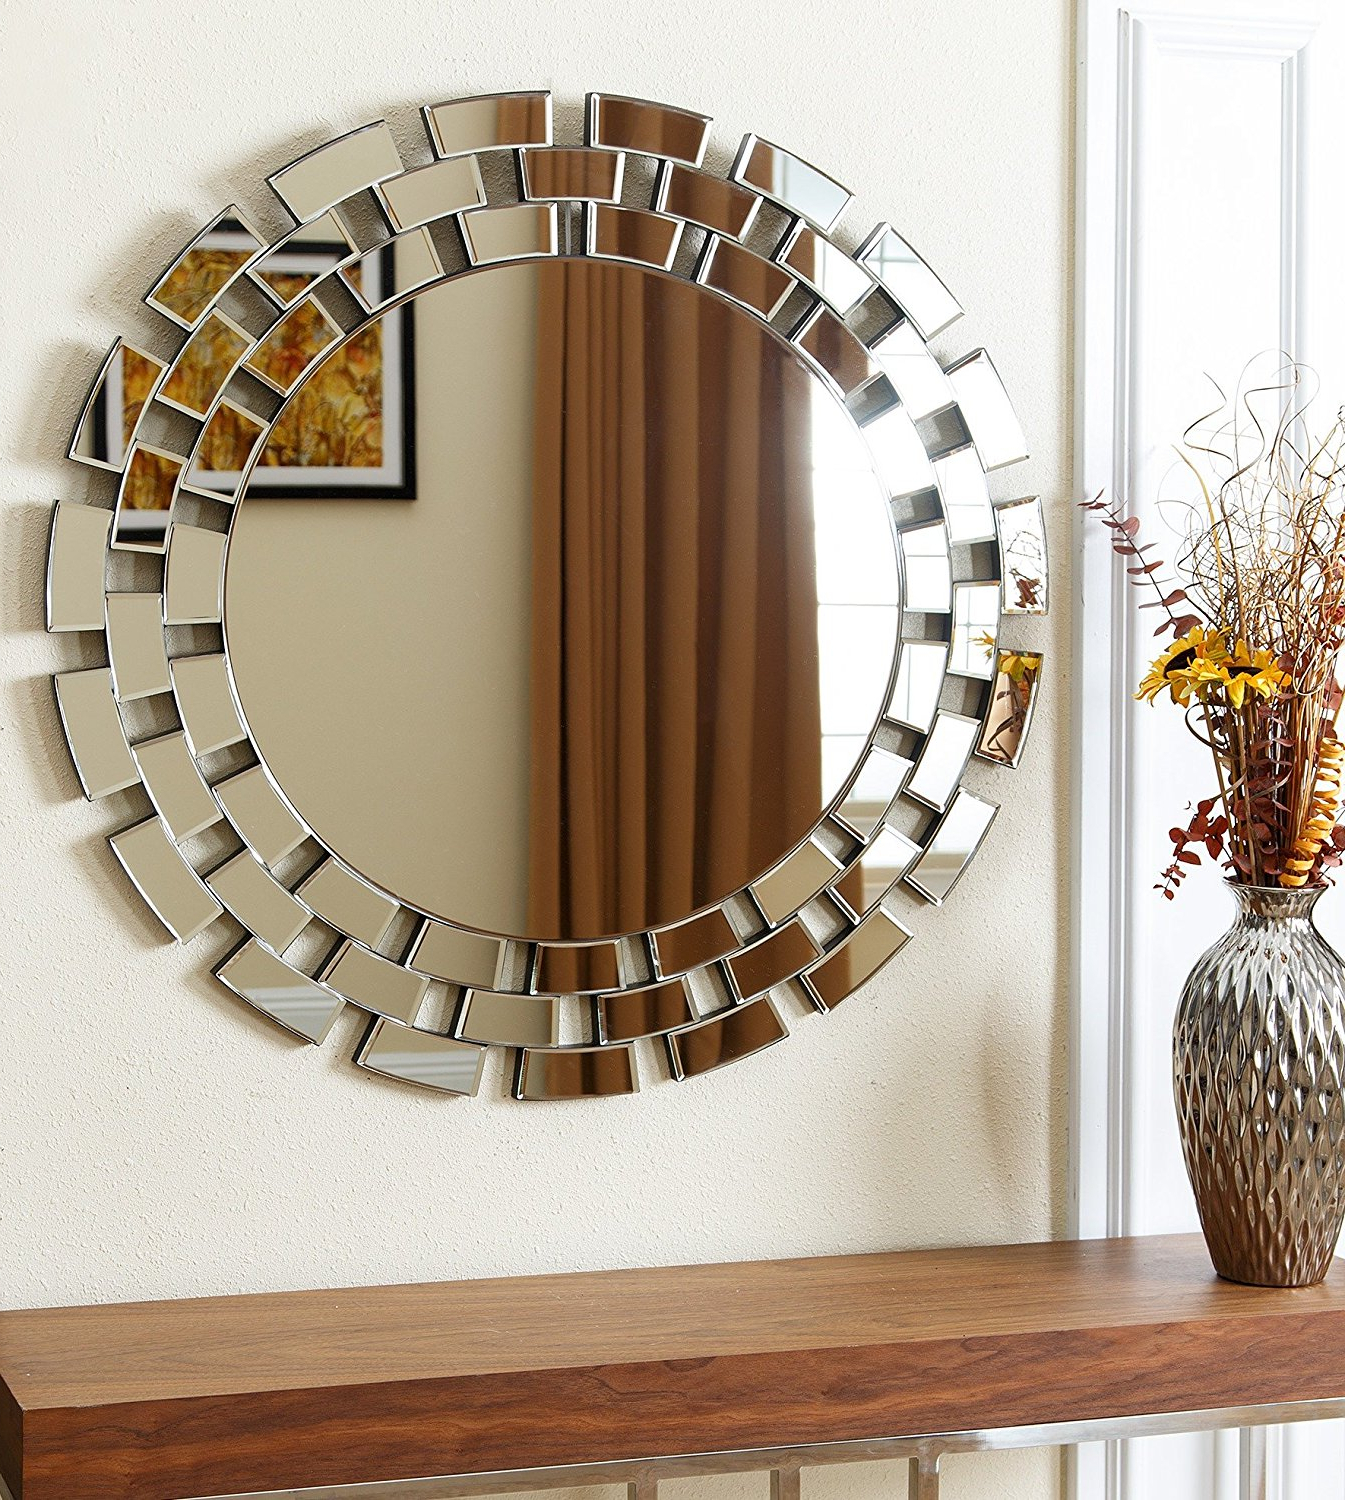 Most Popular Decorative Round Wall Mirrors In Exciting Large Round Wall Mirror With Fancy Design Bathroom Curved (View 9 of 20)